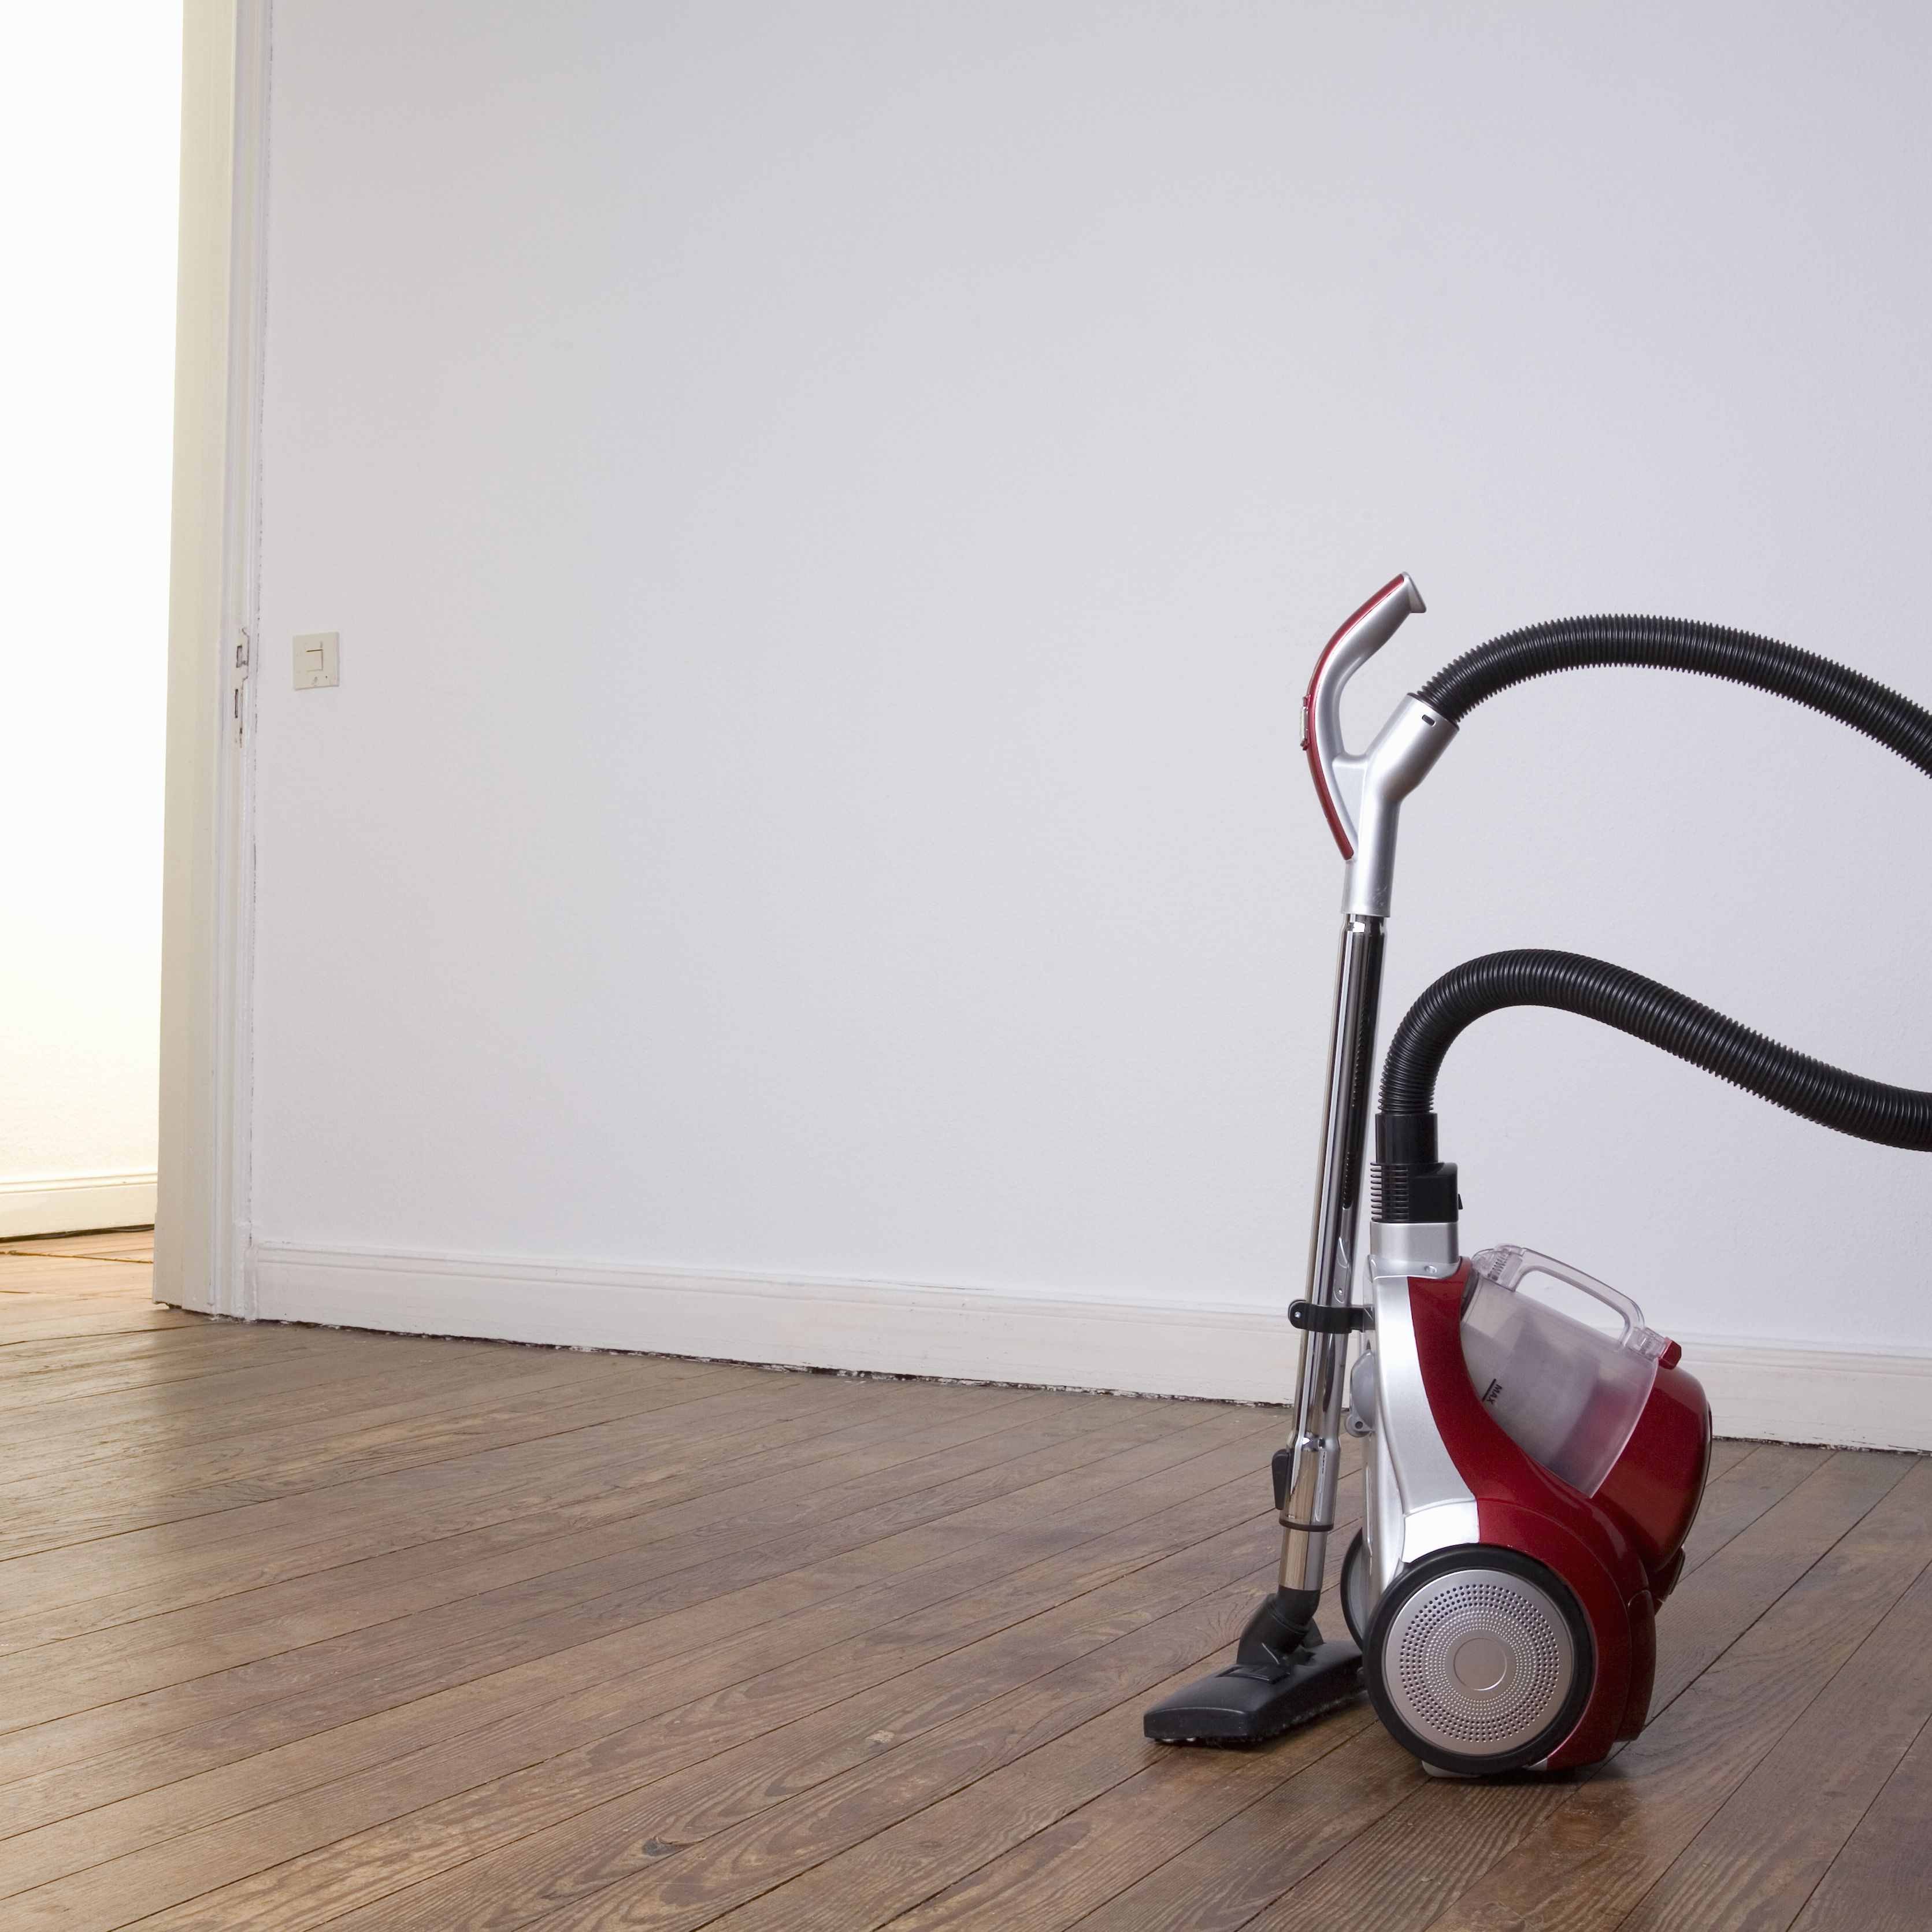 coping with zuigerphobia or the fear of vacuum cleaners